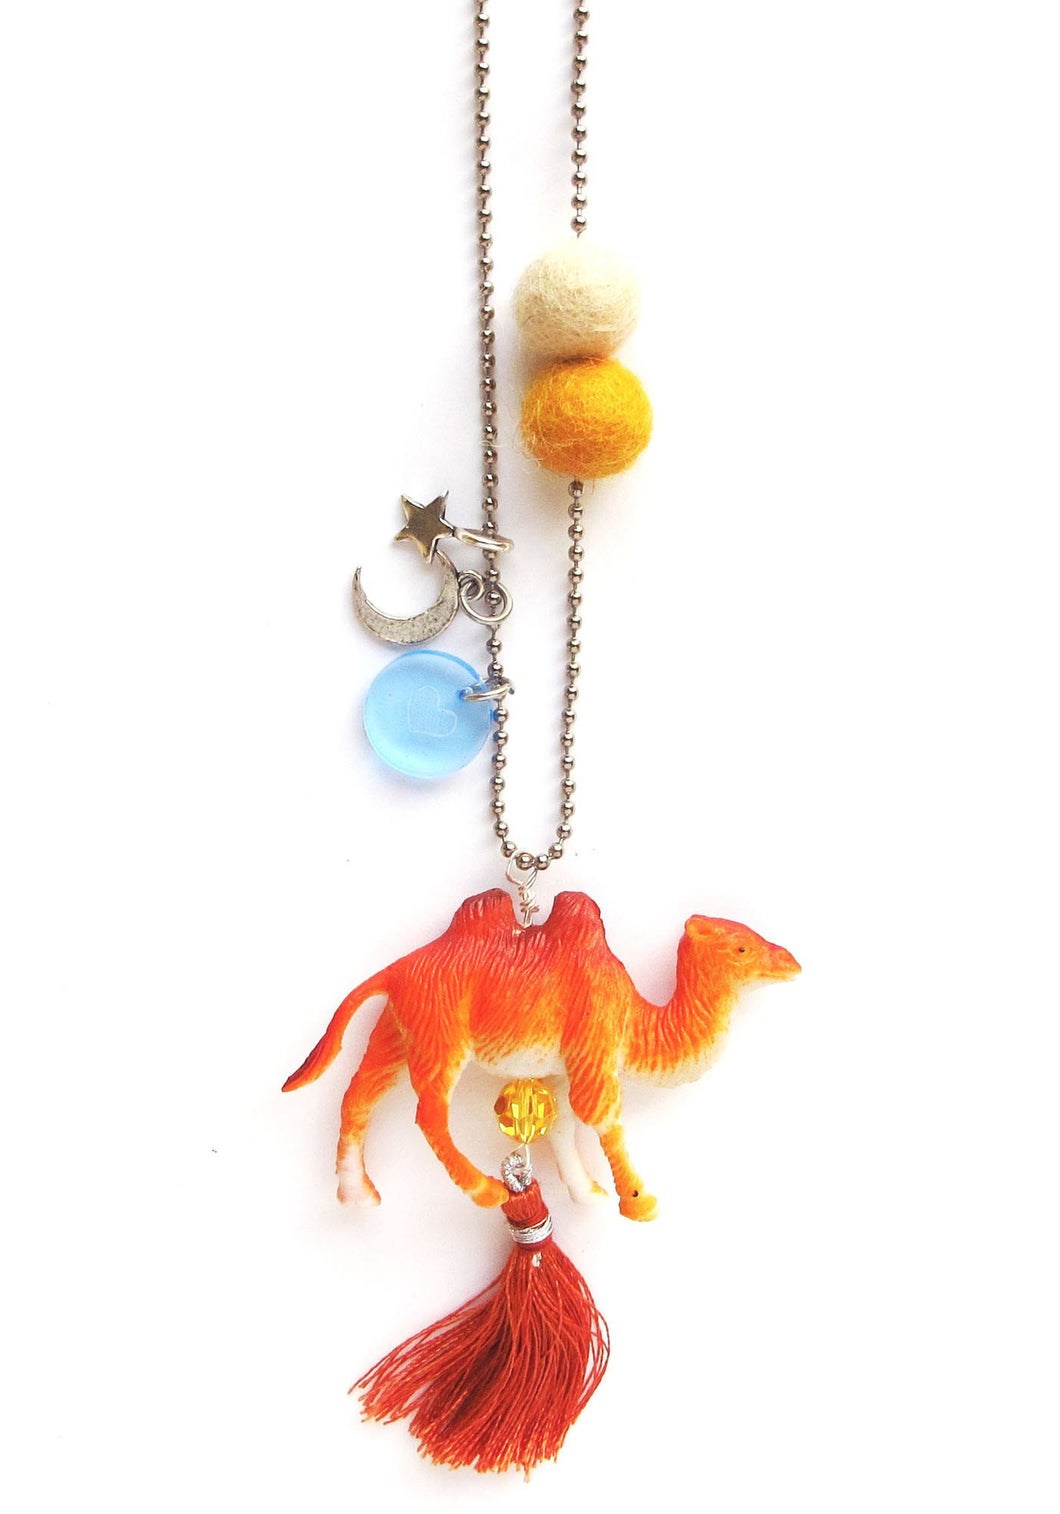 Charley the Camel Necklace